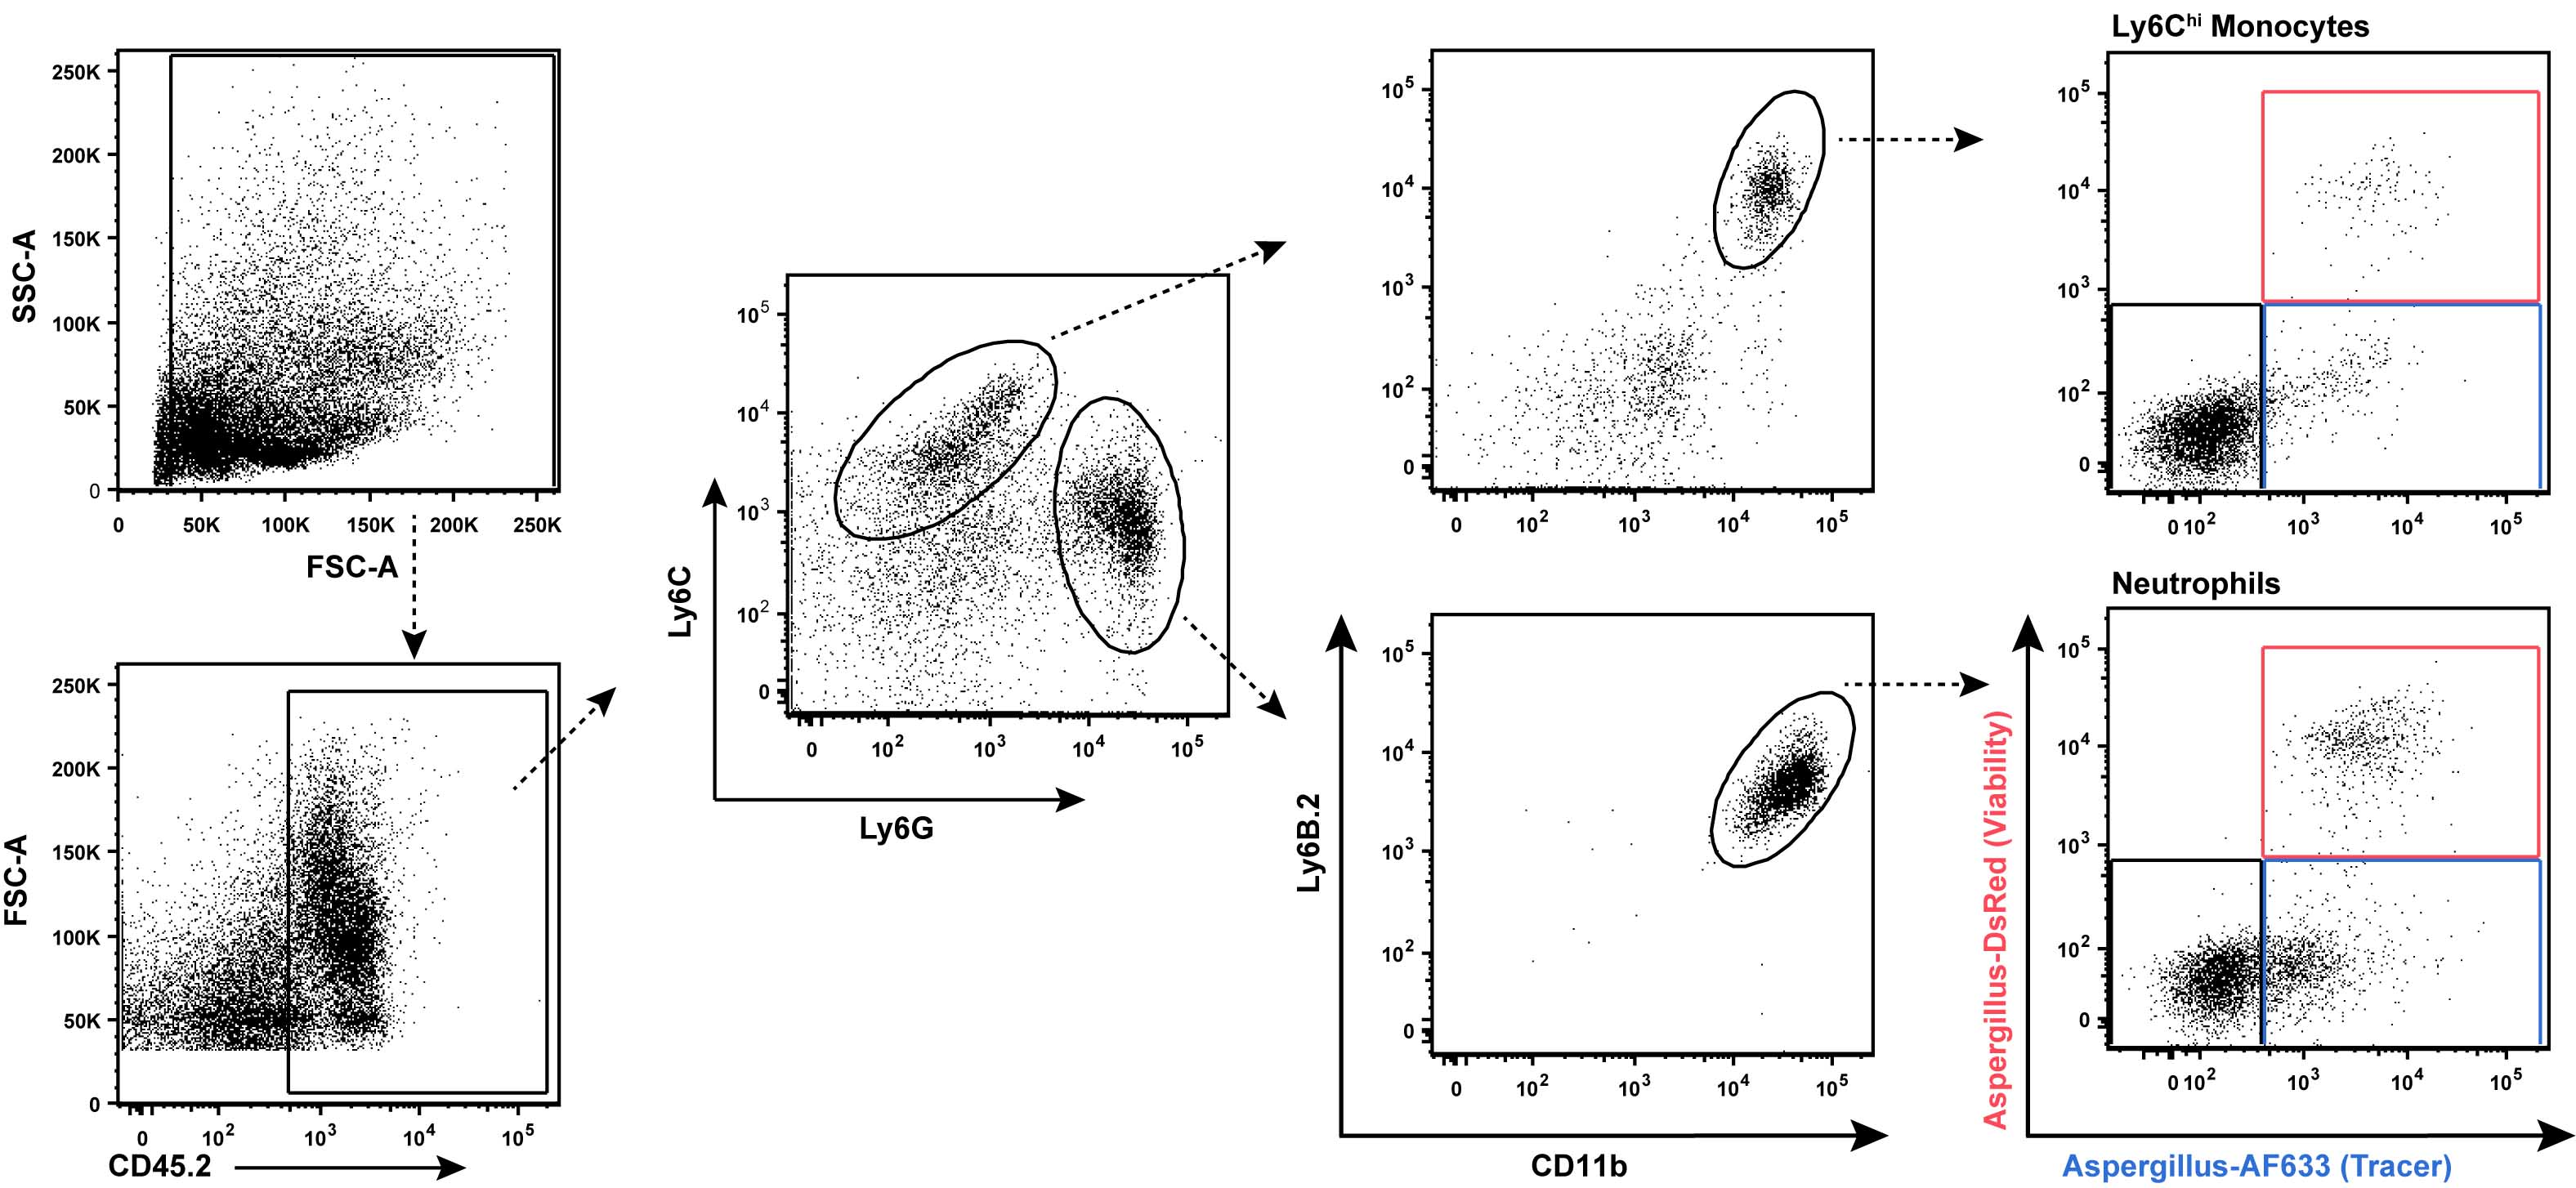 Flow Cytometry of Lung and Bronchoalveolar Lavage Fluid